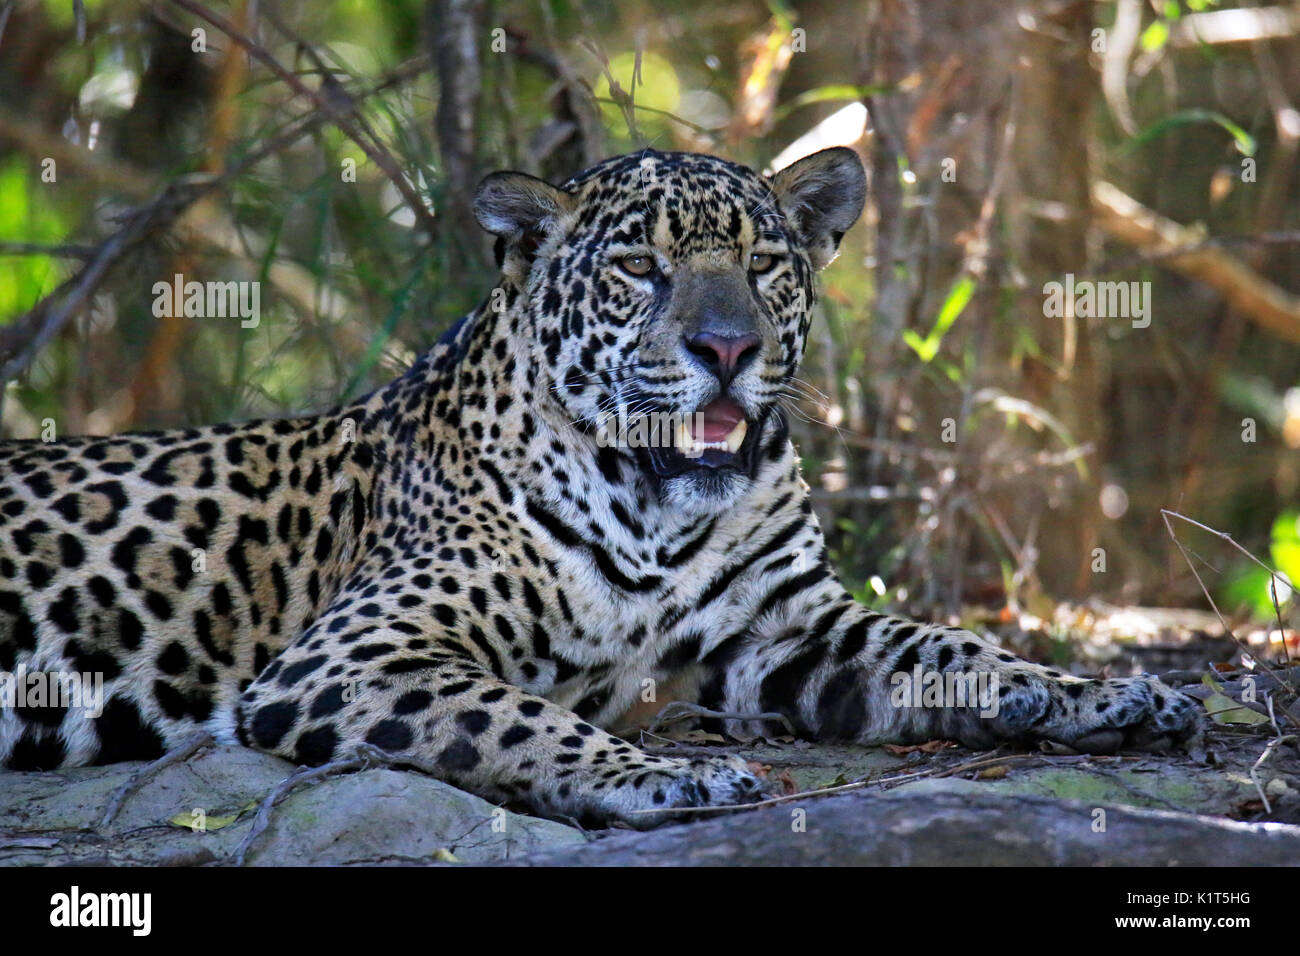 Jaguar Resting on the Ground. Pantanal, Brazil - Stock Image